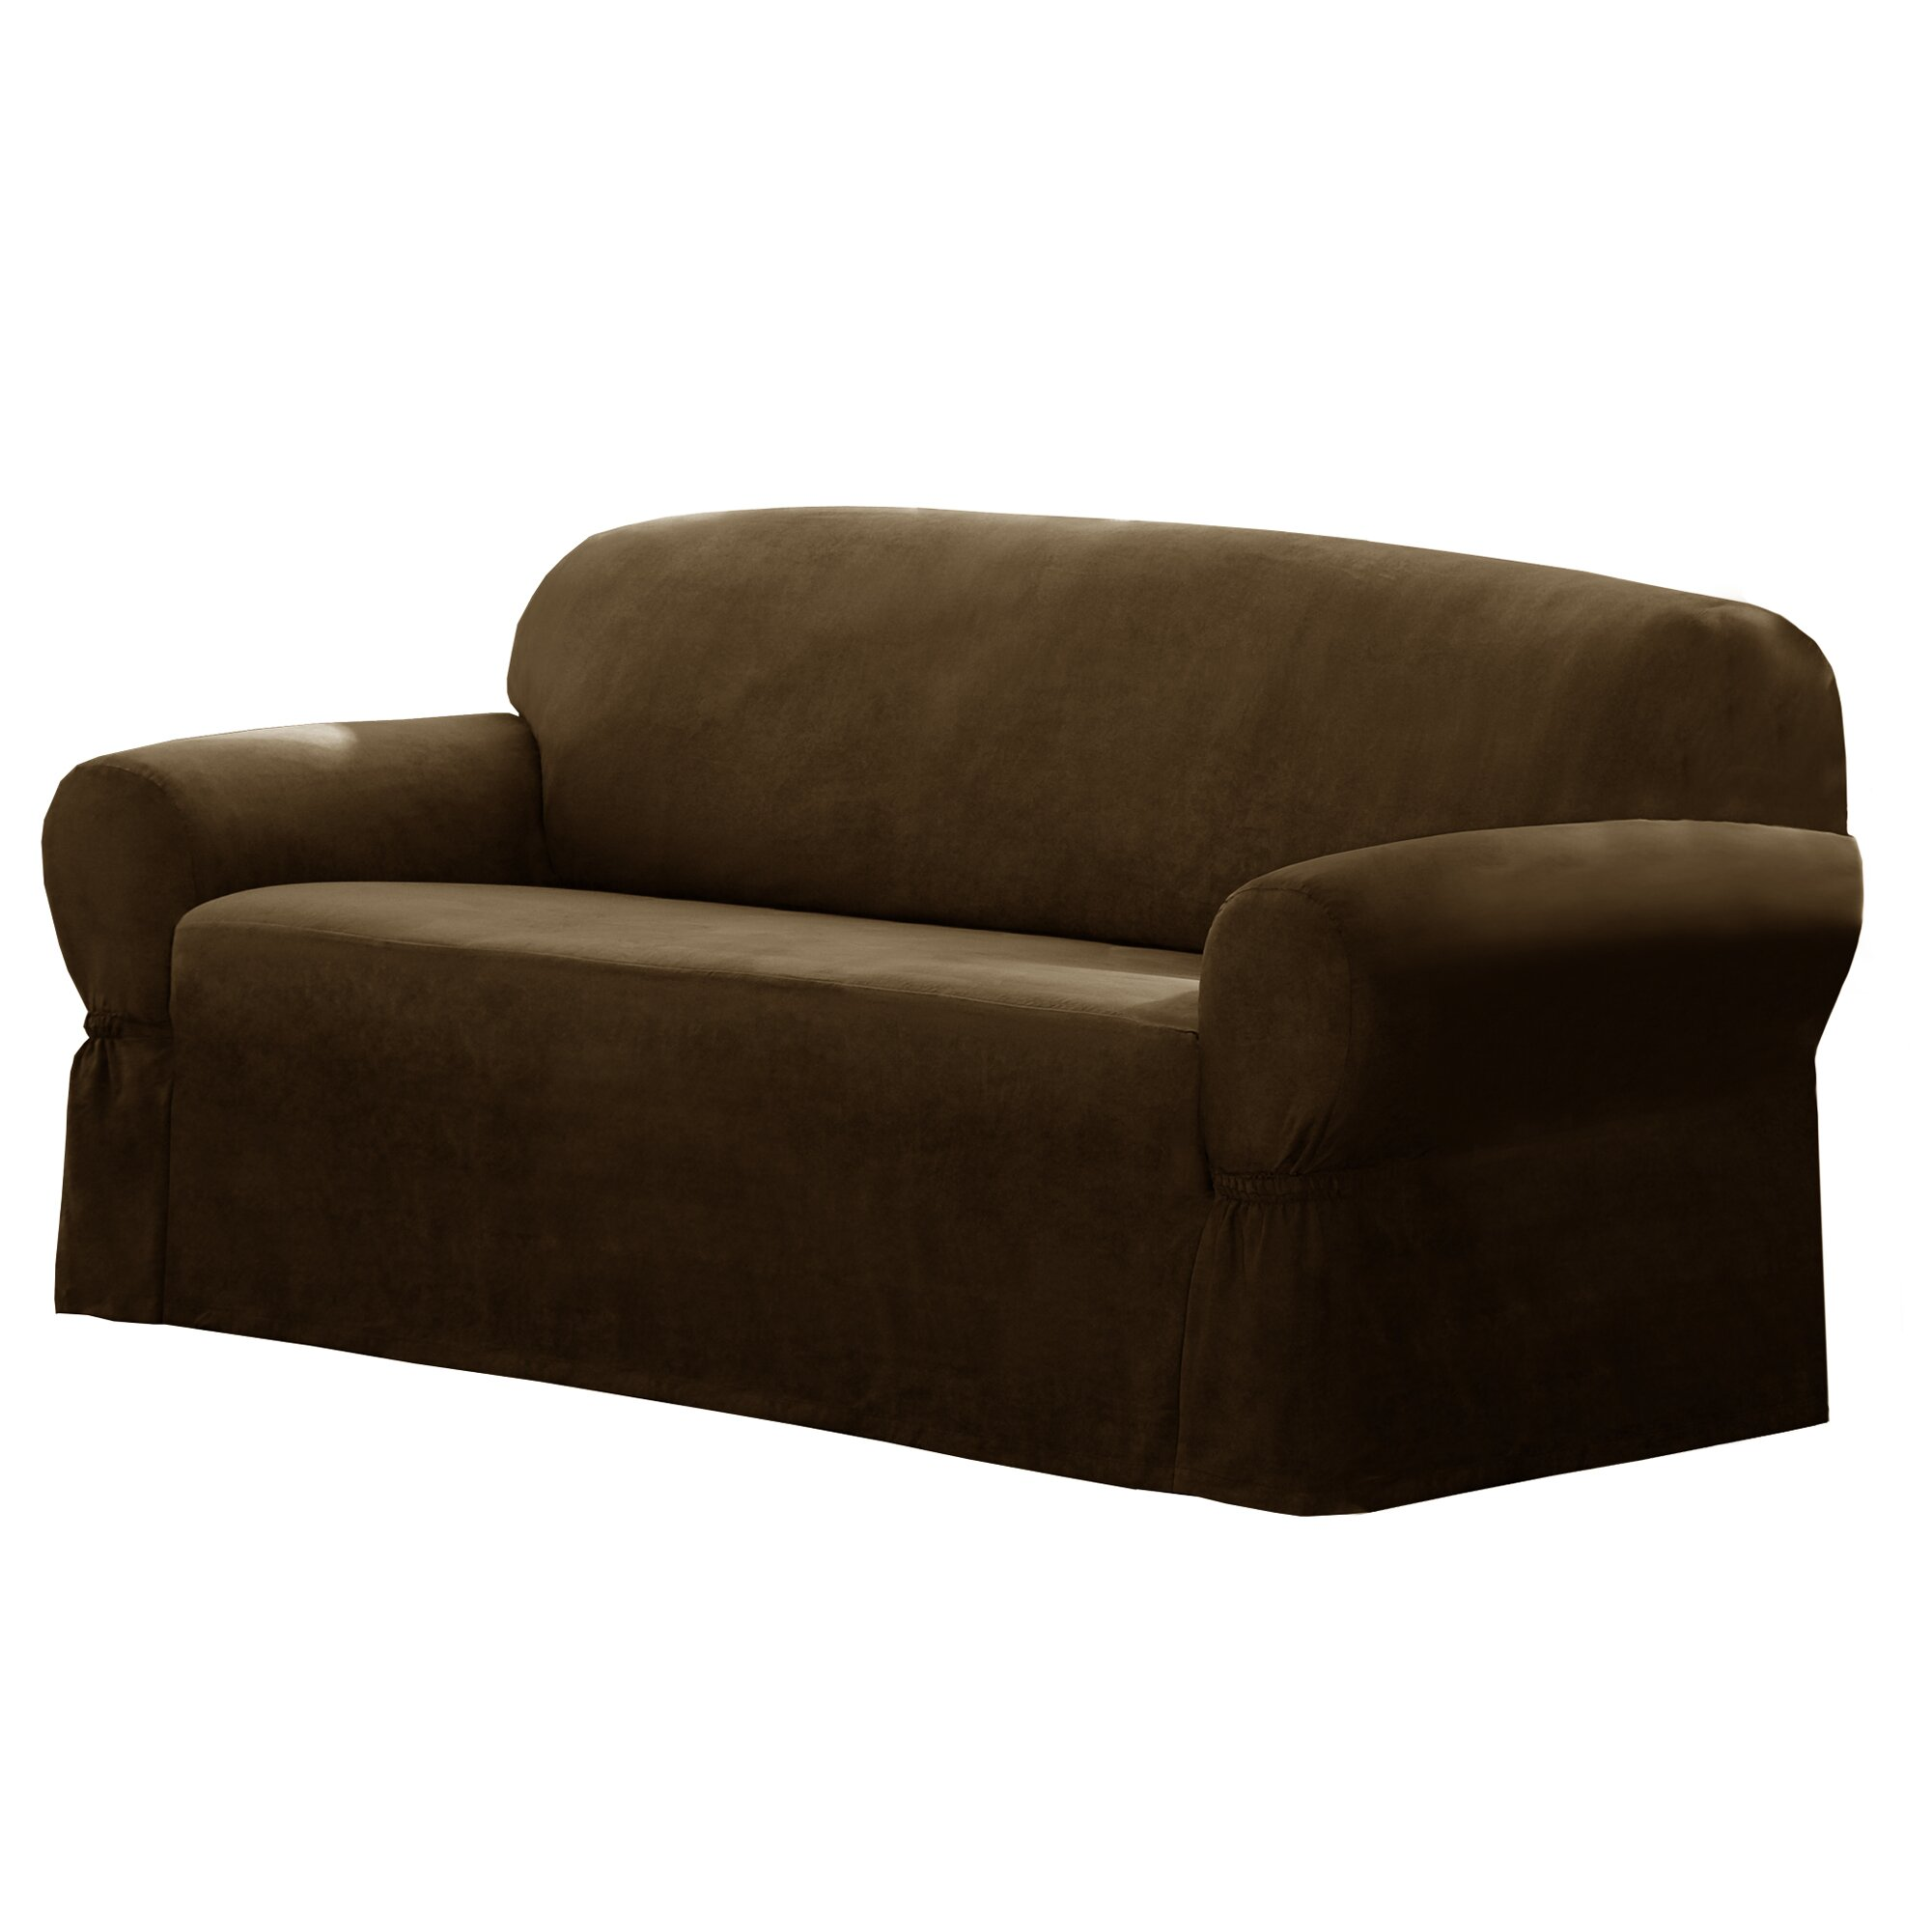 Maytex t cushion loveseat sofa slipcover reviews wayfair Couch and loveseat covers